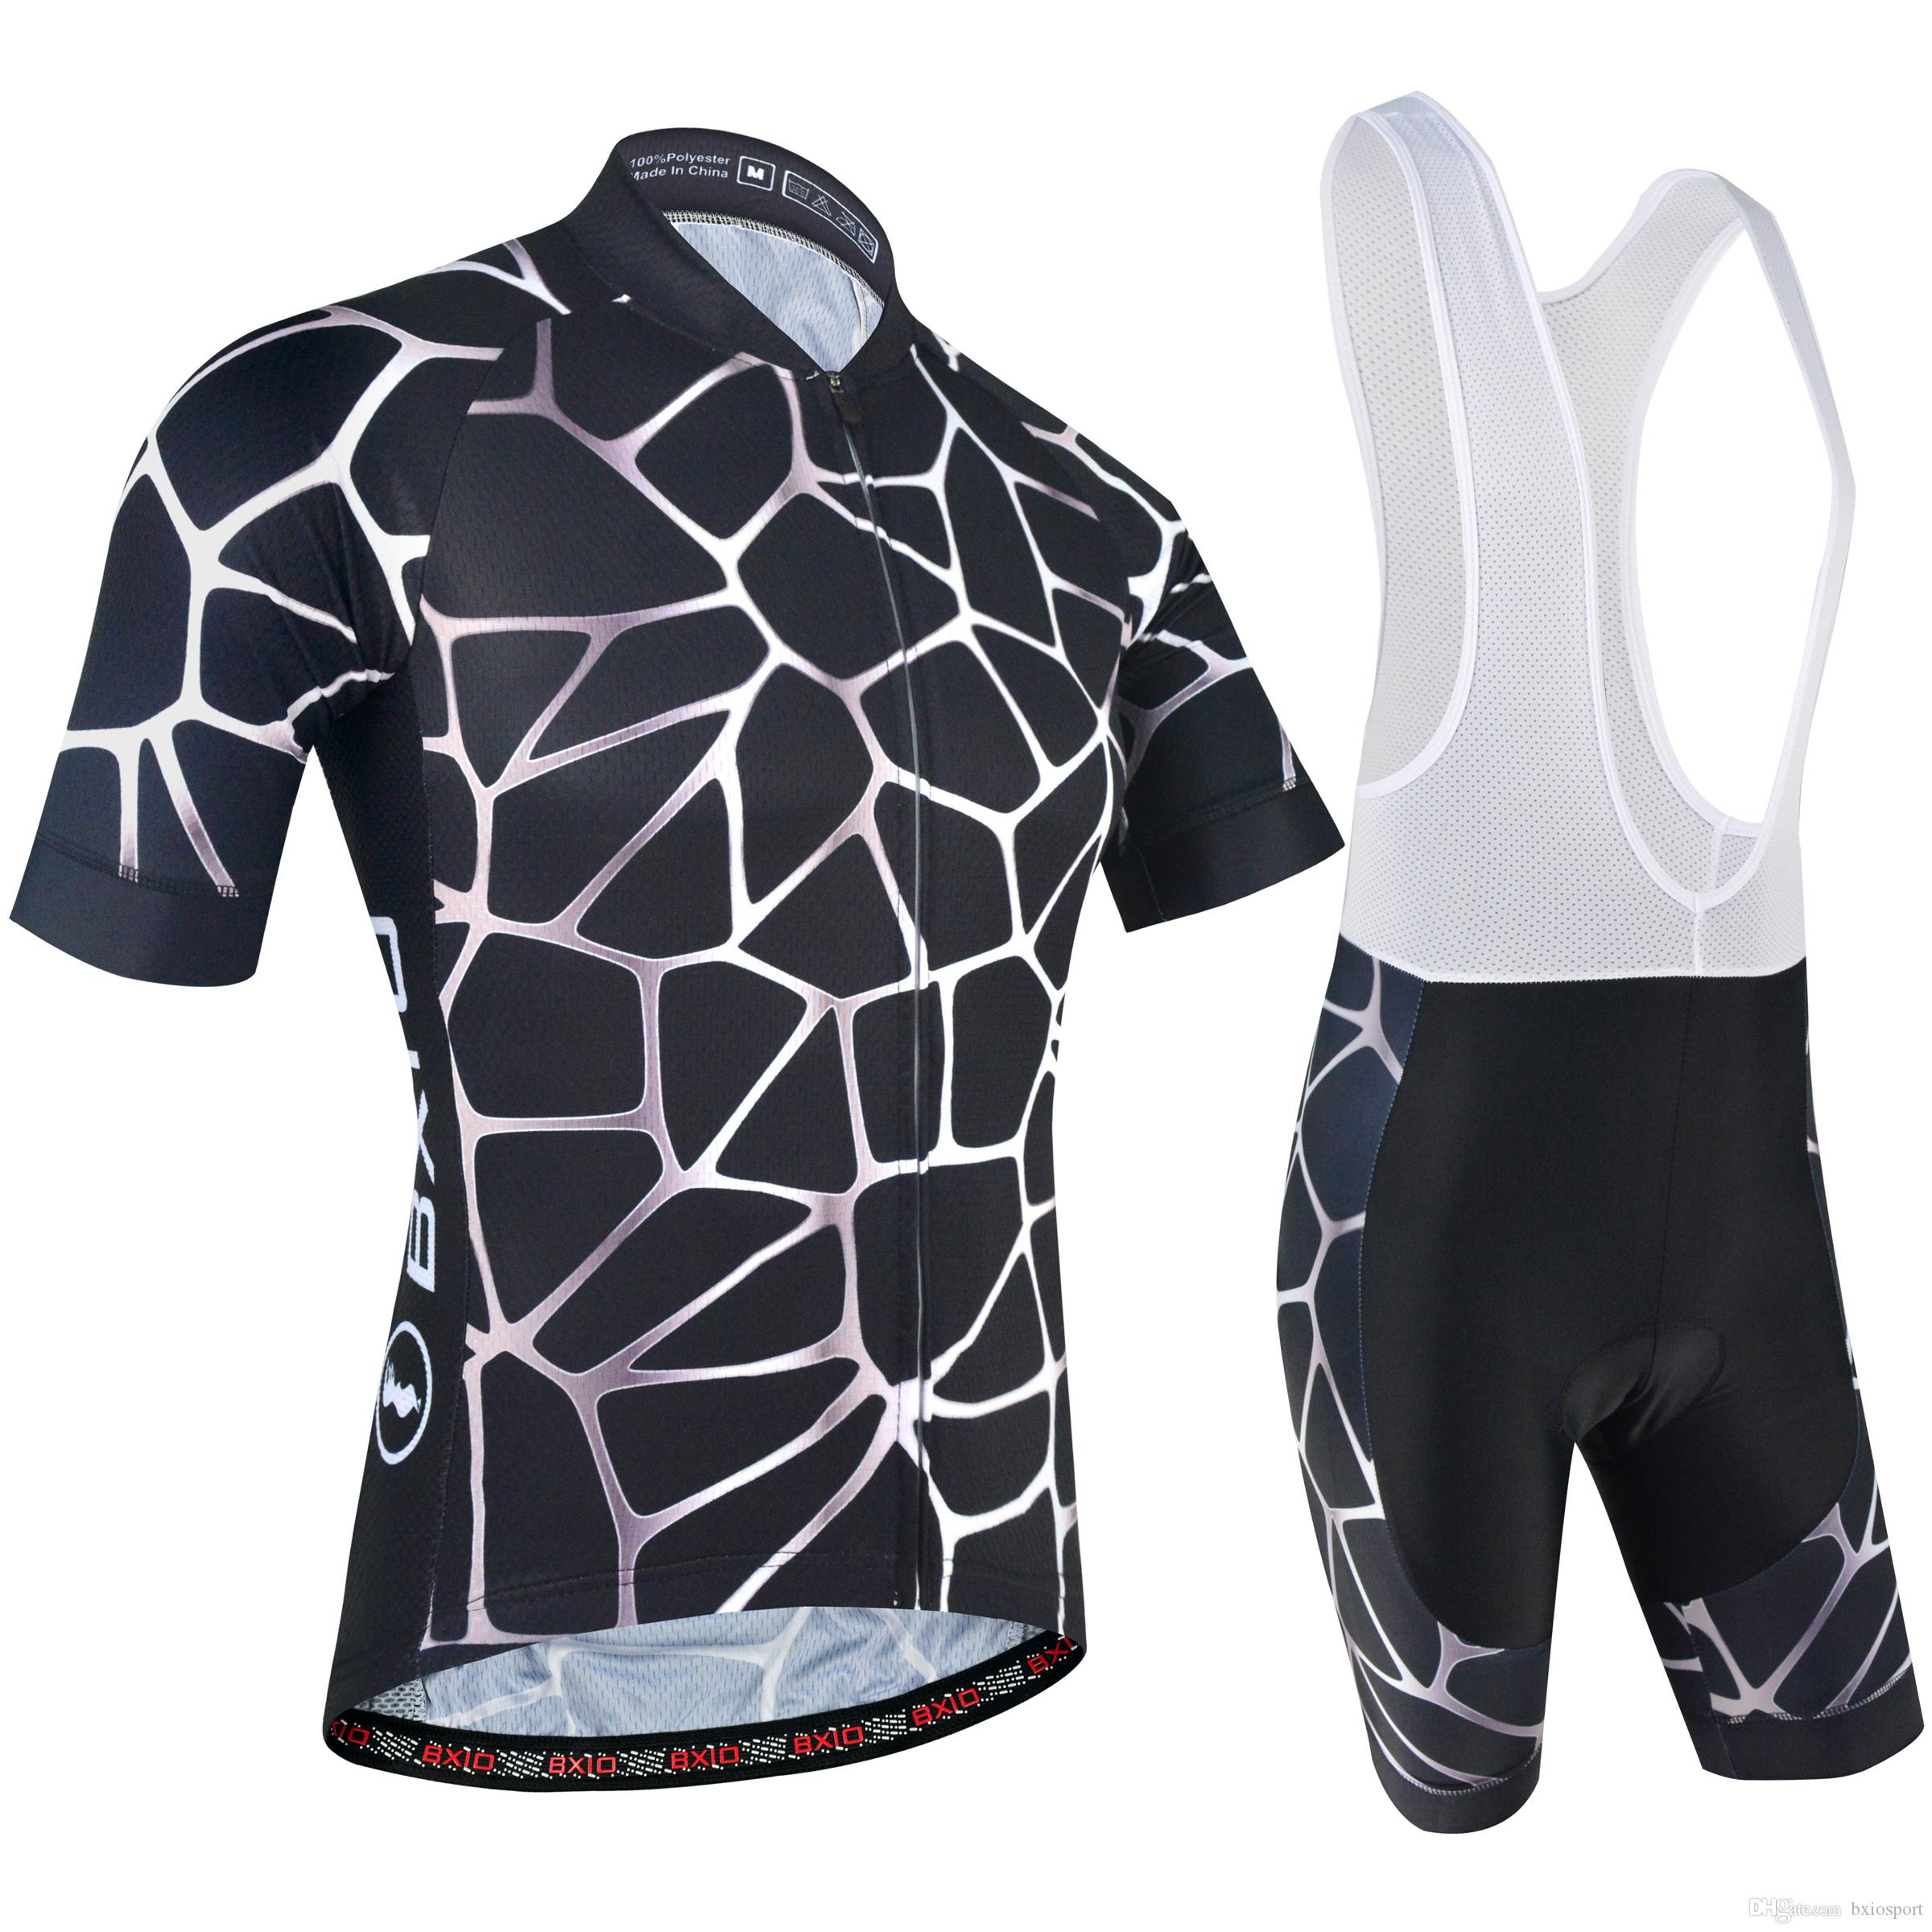 2018 BXIO Brand Cycling Jerseys Two Sides Pineapple Breathable Mesh Bikes  Clothes Cool Summer Cycling Clothing Ropa Ciclismo Hombres BX 172 Biking  Jerseys ... 7481ec511